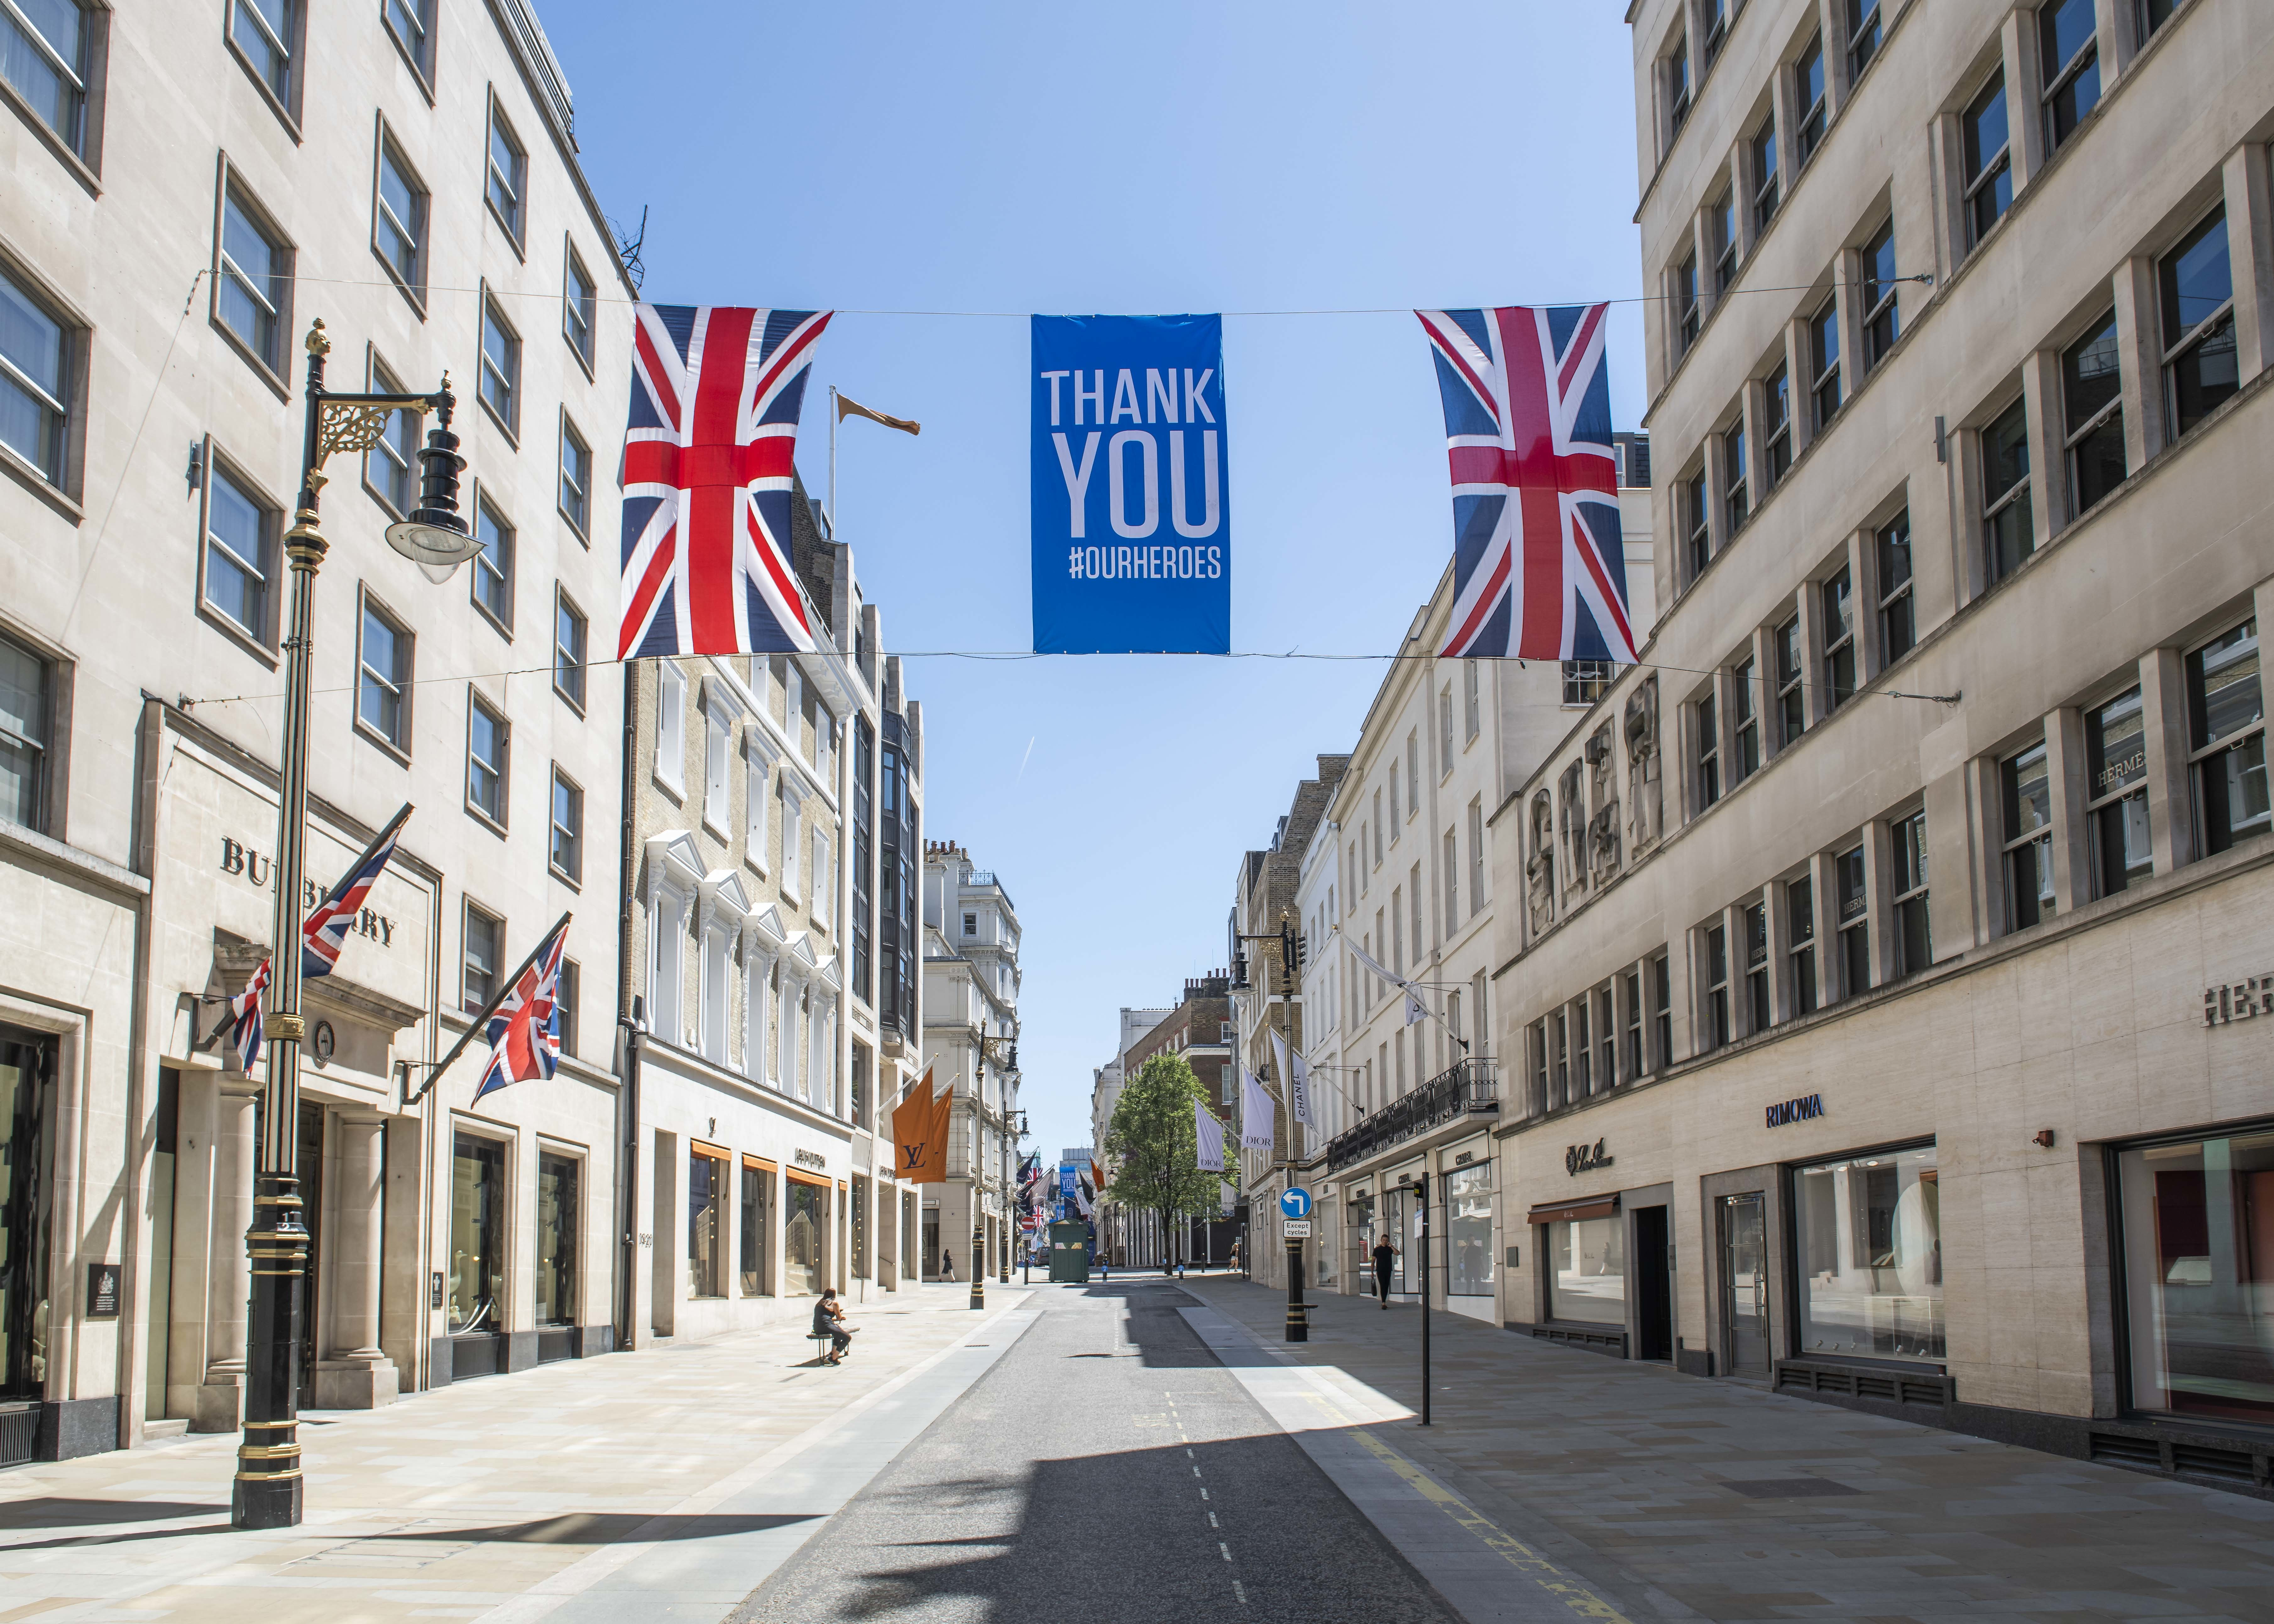 Thank You Our Heroes and Union Flags are displayed over New Bond Street in preparation for the shops to reopen as the Coronavirus lockdown eases,  Mayfair, London. Picture date: Friday 29th May 2020. Photo credit should read: David Jensen/EMPICS Entertainment